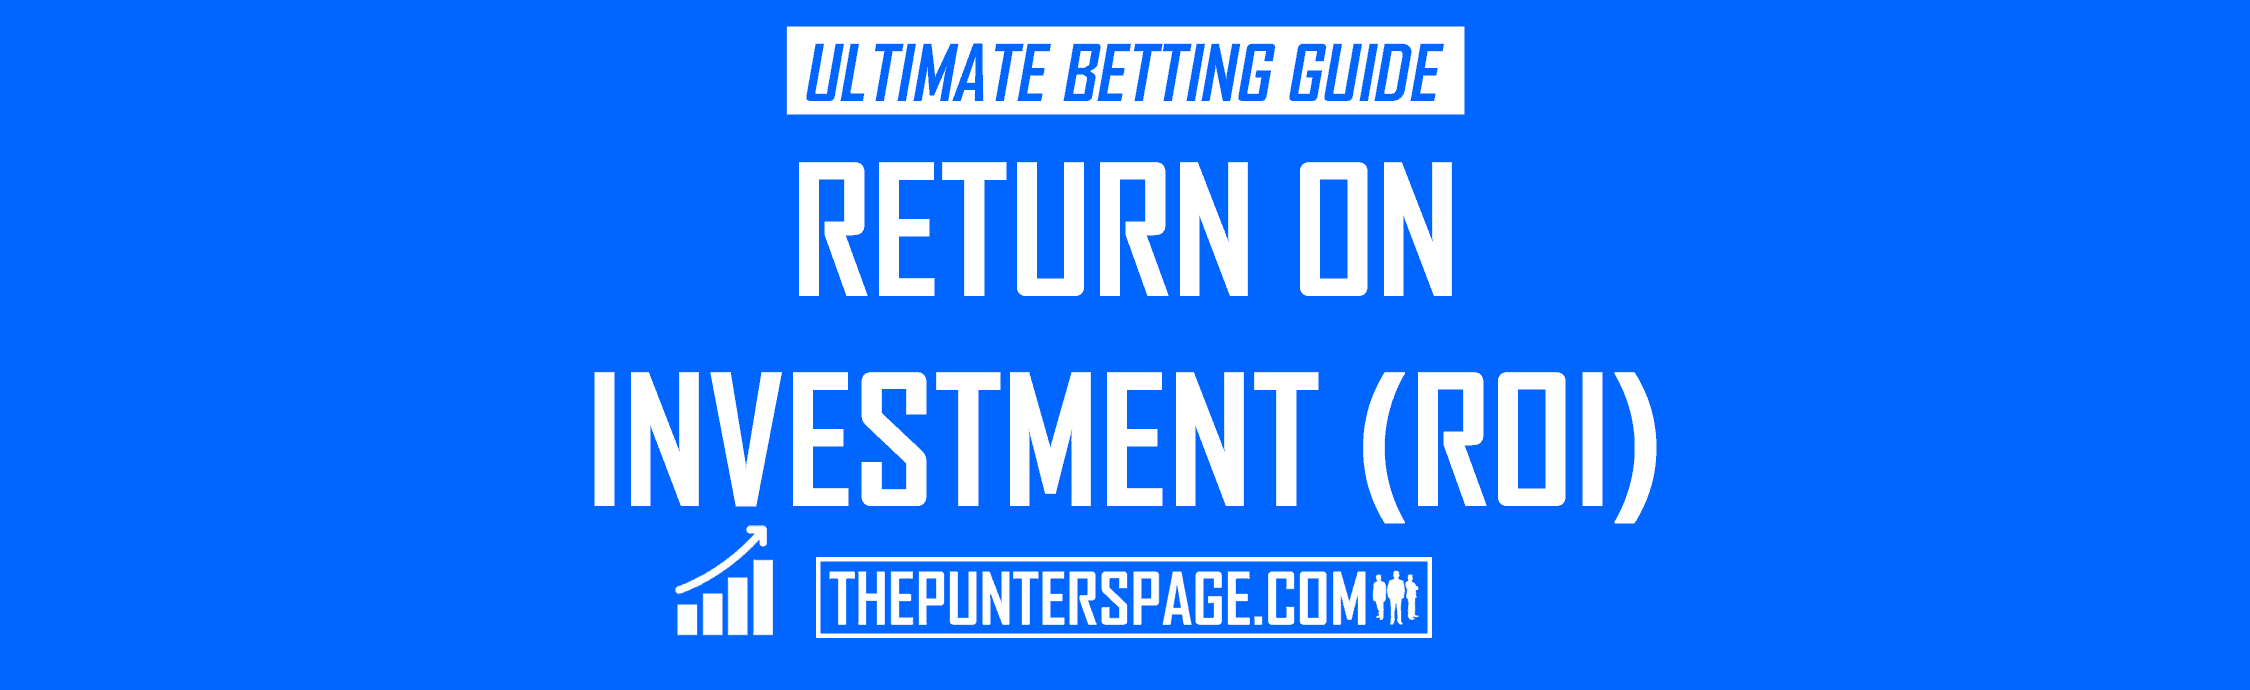 Return On Investment (ROI) Betting Guide & Calculator